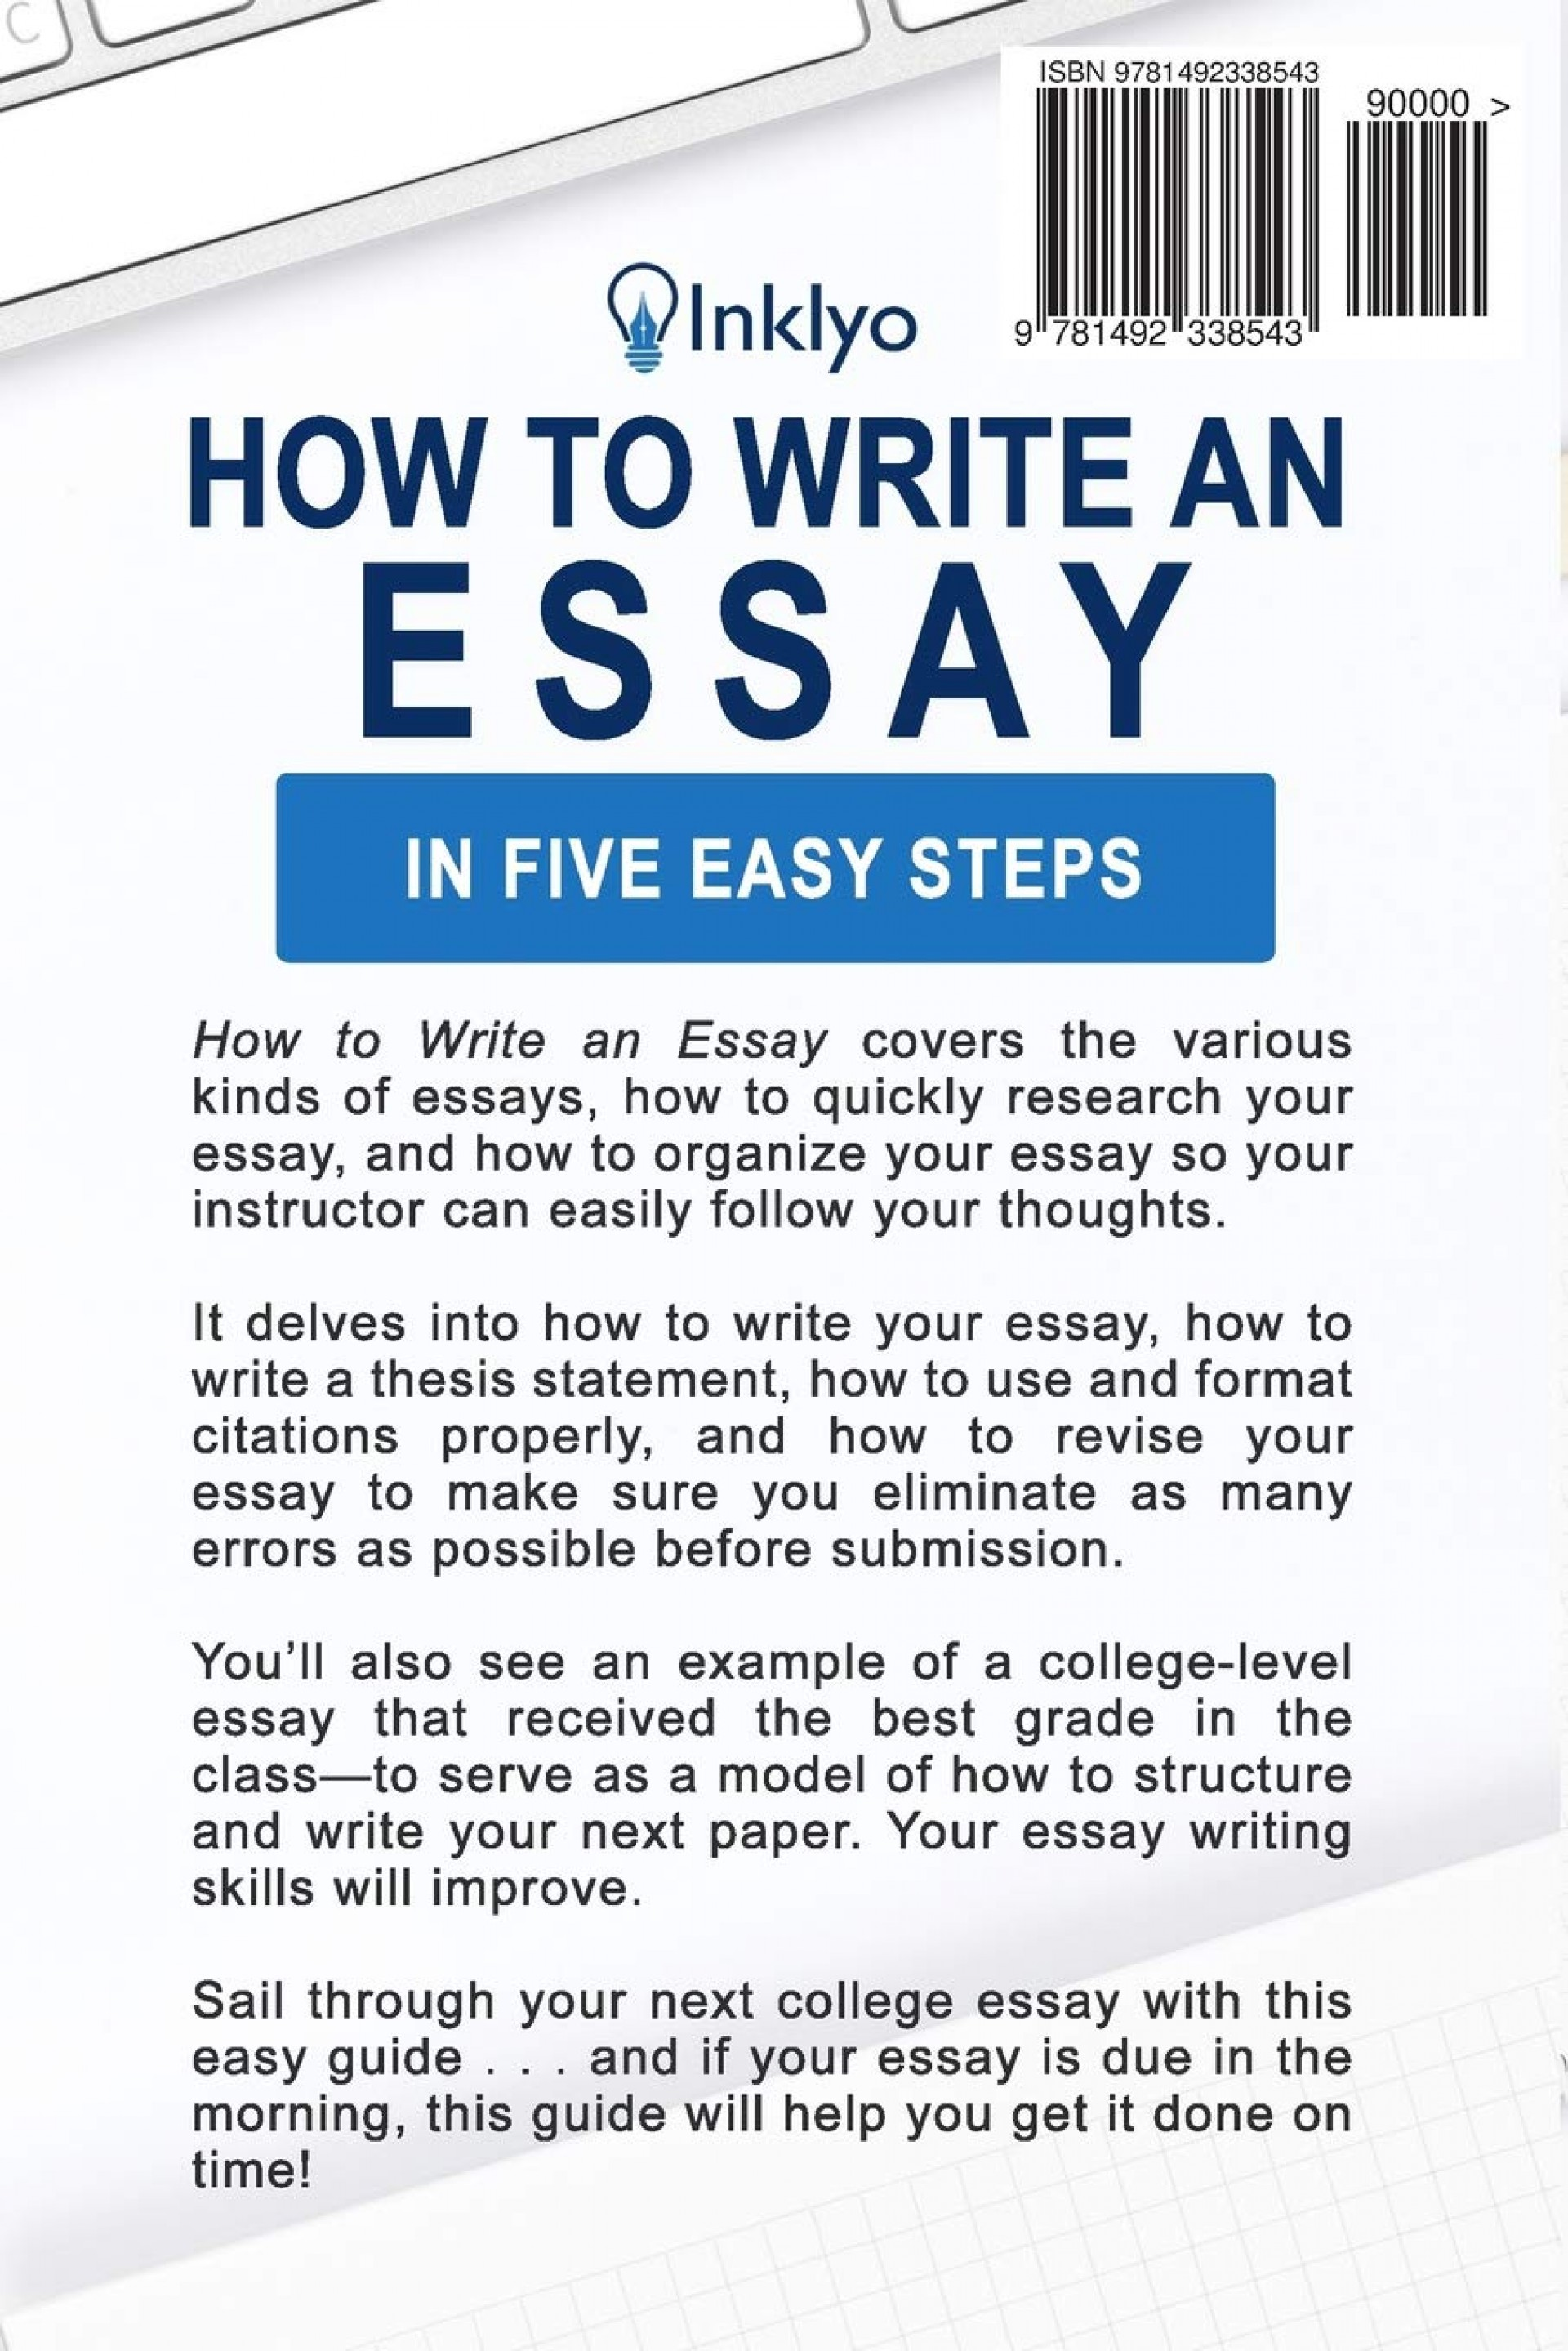 006 71v7ckw5pll How To Write An Essay Quickly Unbelievable English Very 1920